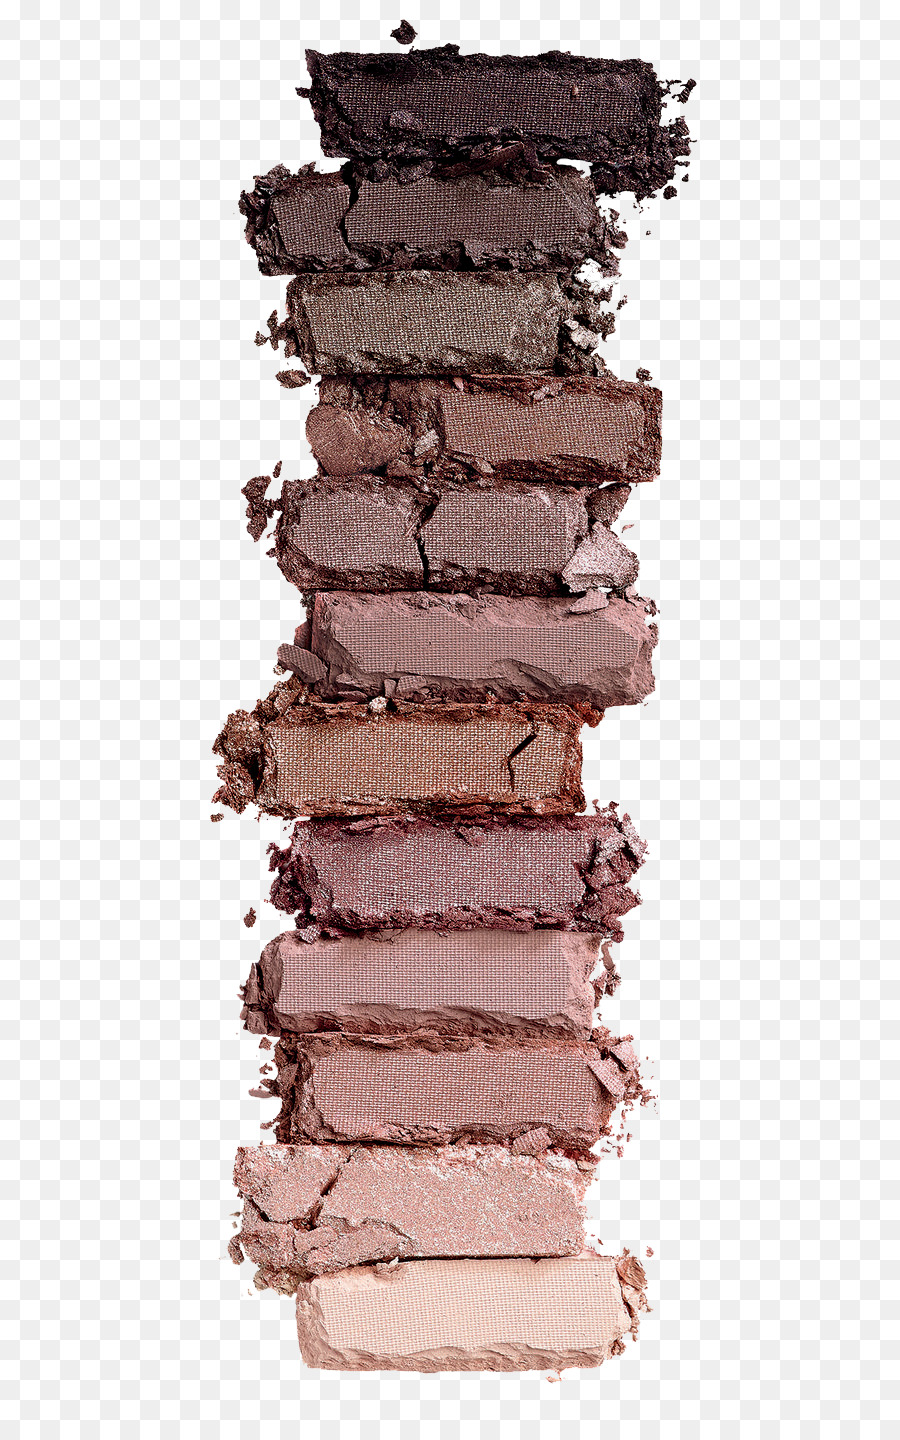 Urban decay cosmetics eye shadow palette beauty eyeshadow powder urban decay cosmetics eye shadow palette beauty eyeshadow powder composition diagram common creative advertising ccuart Images